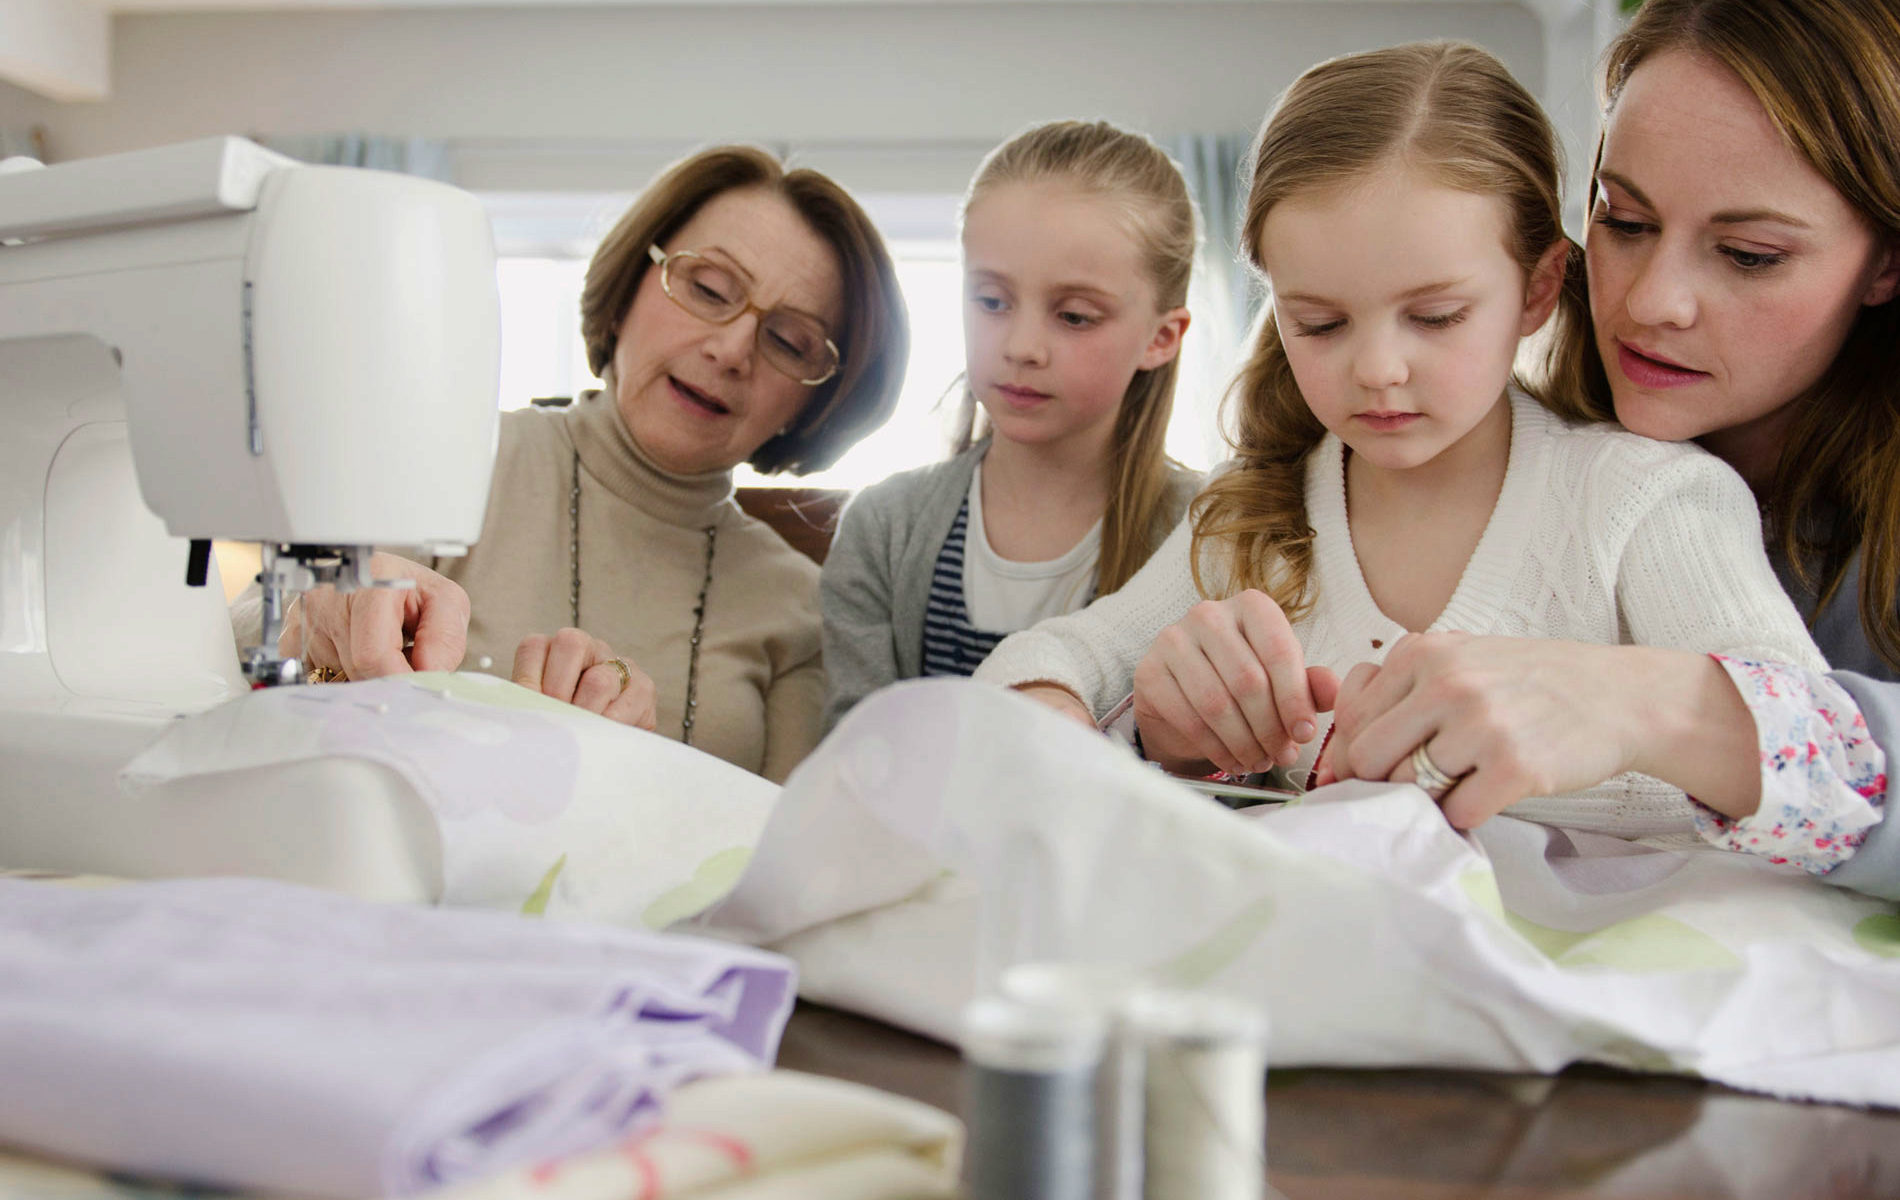 Older women and young girls sew together